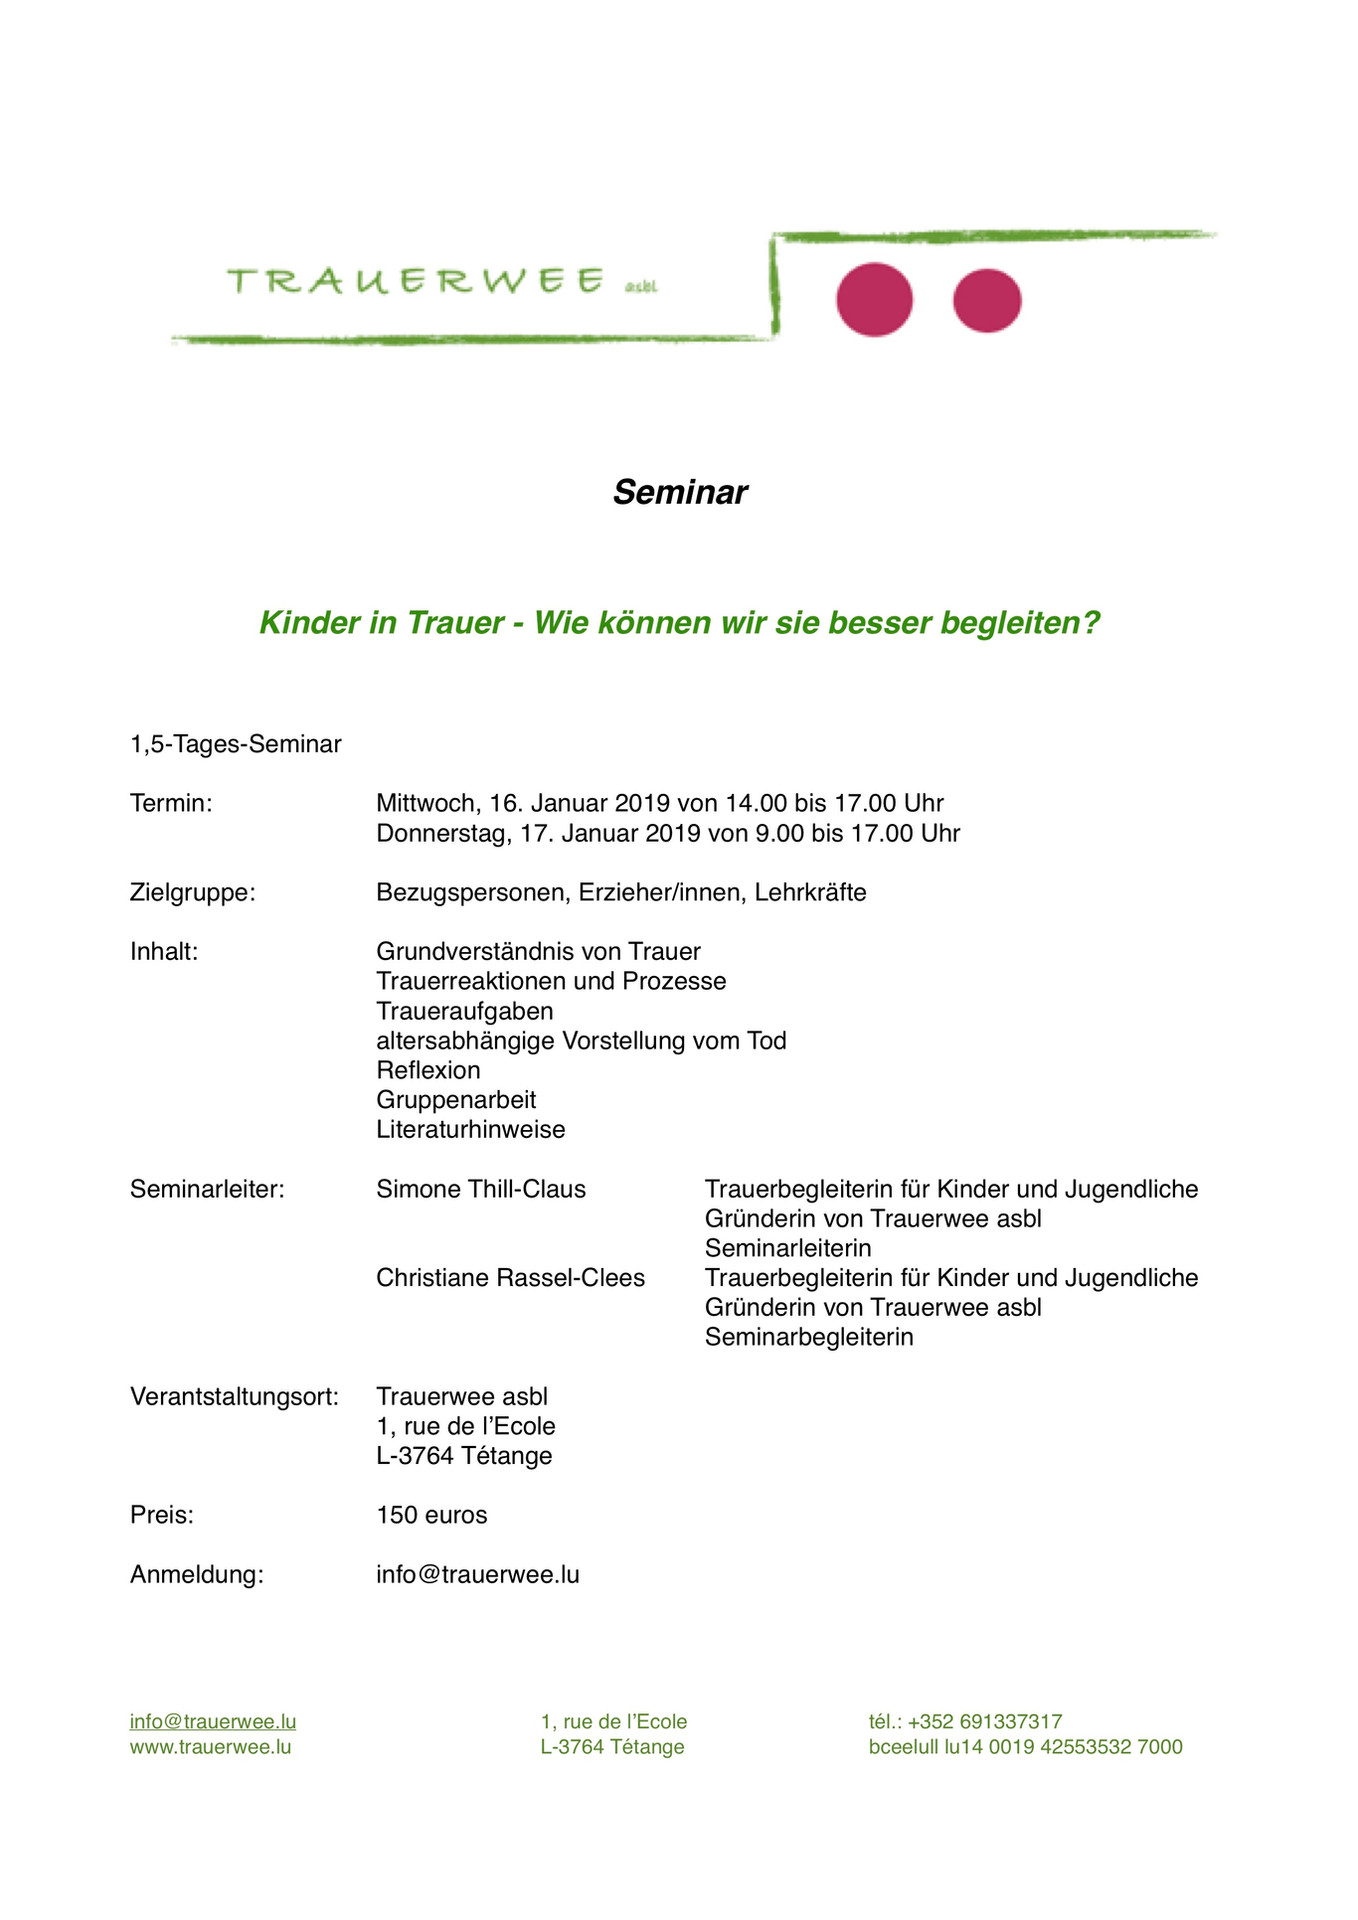 Kinder in Trauer - Seminar